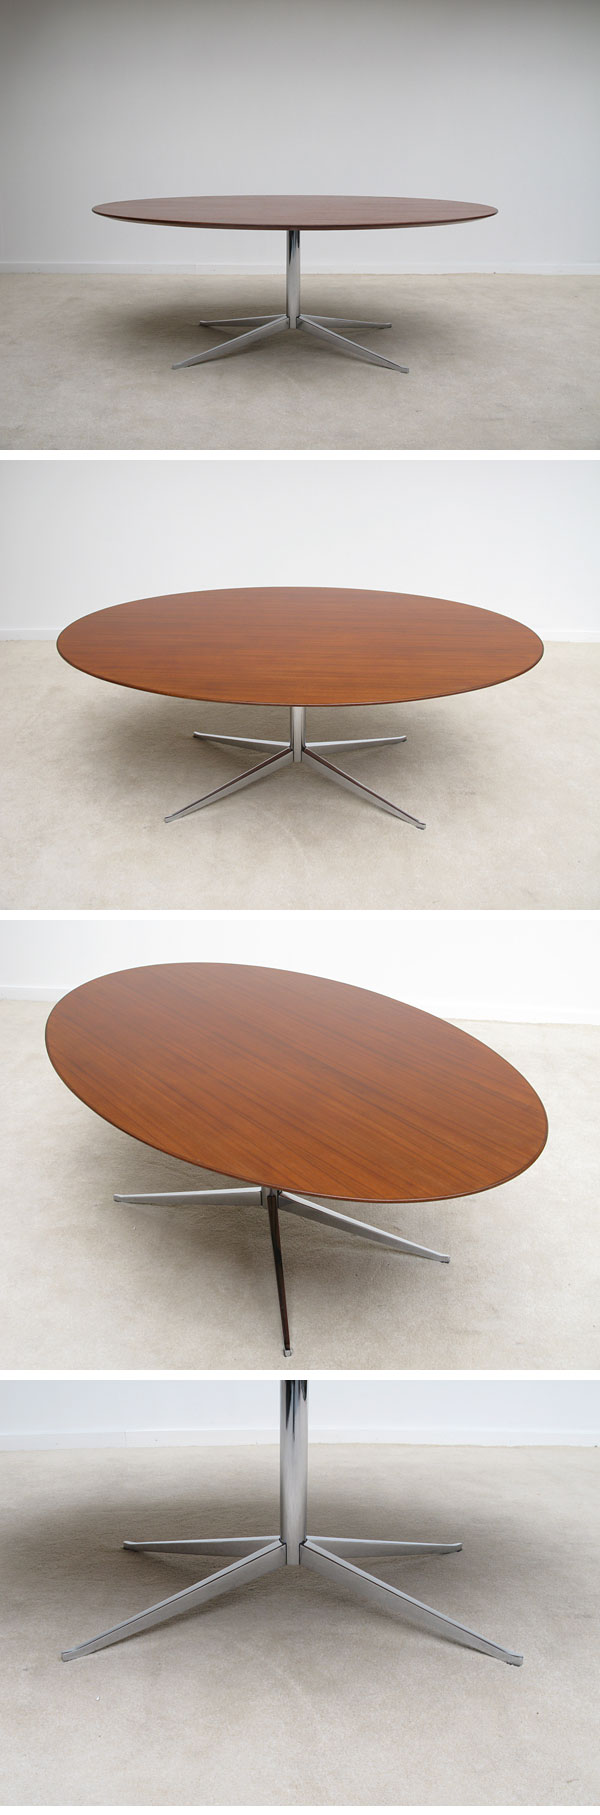 Florence, Knoll, 1961, florence, table, dining, conference, 60s, 70s